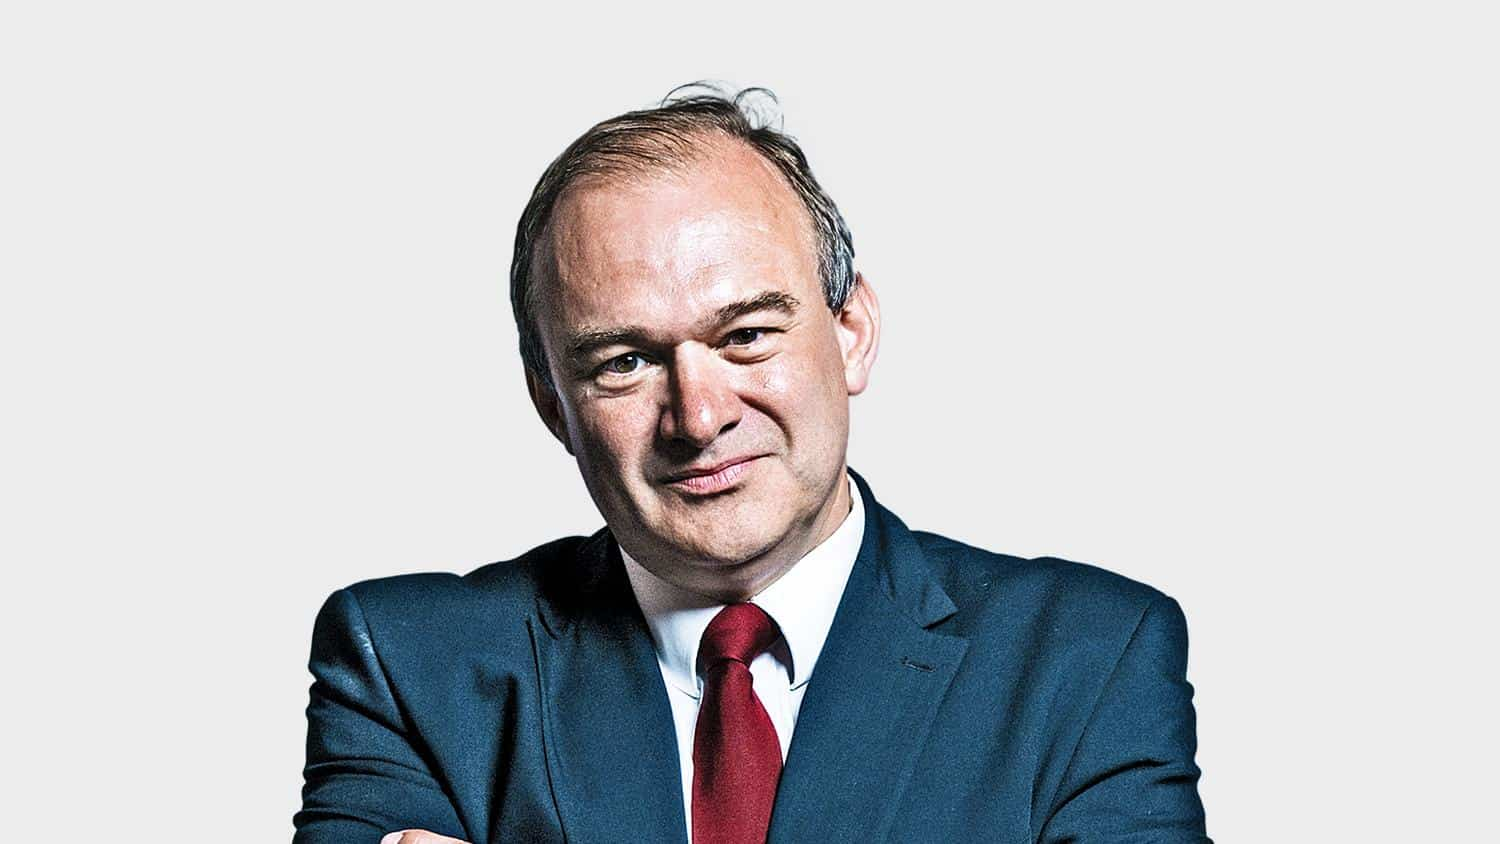 Divest Parliament: Ed Davey calling for divestment of fossil fuels.